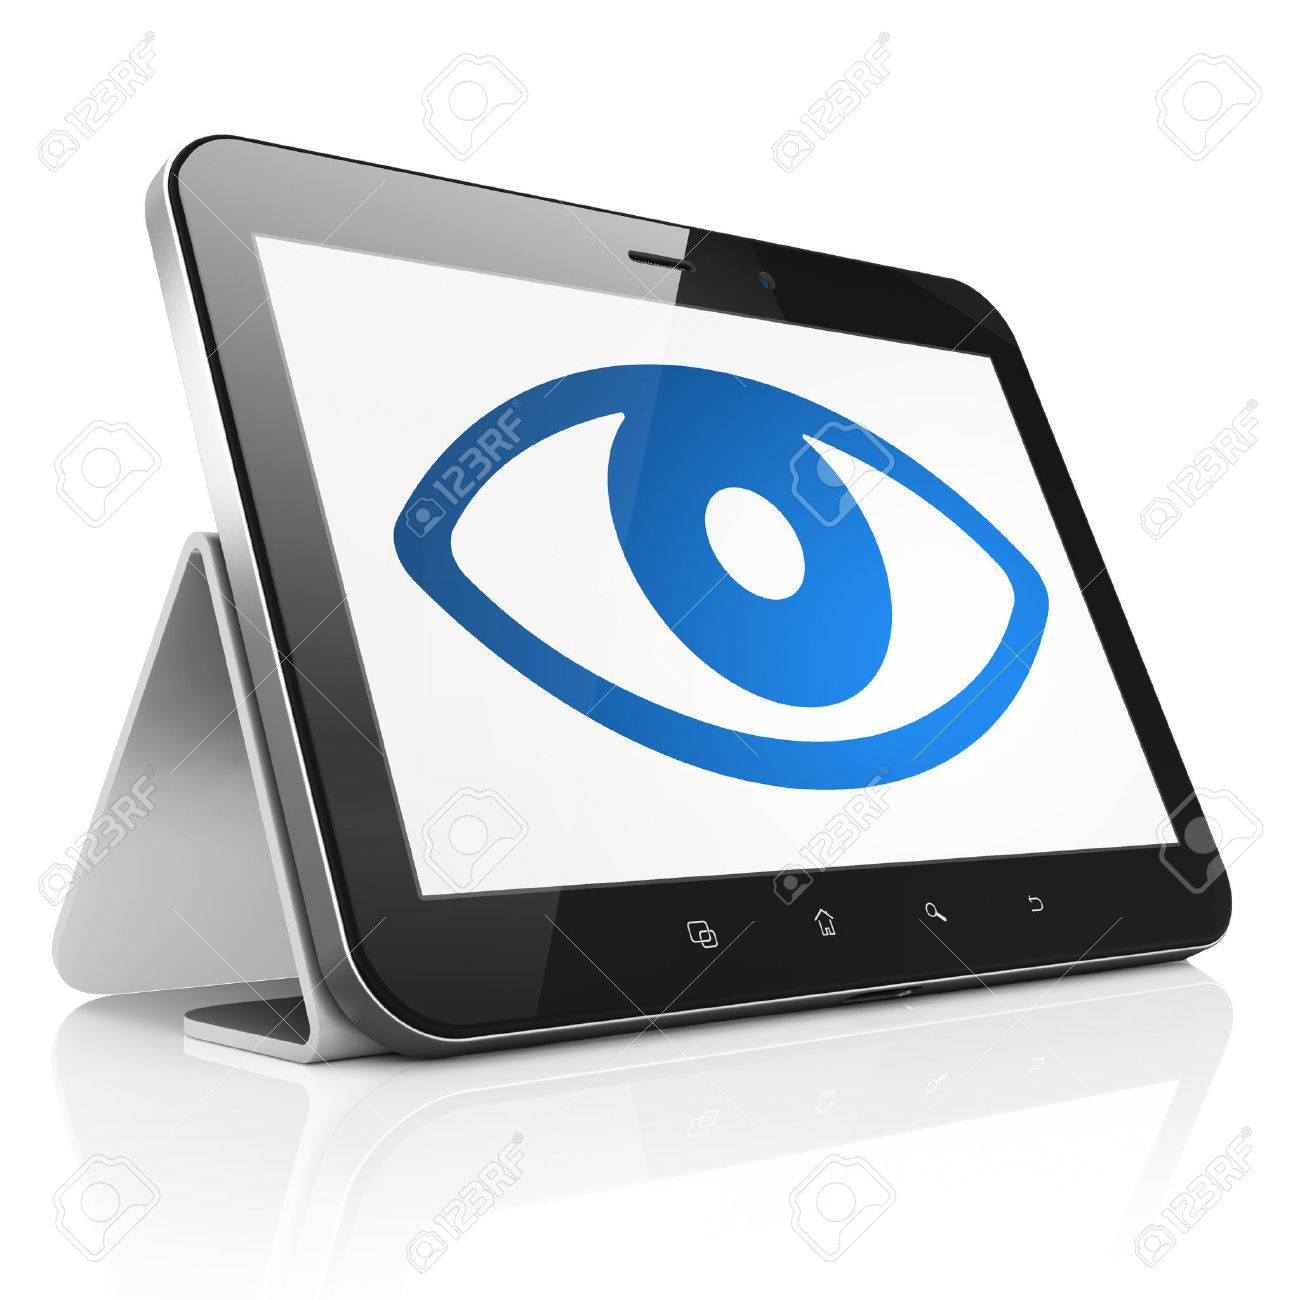 Security concept: black tablet pc computer with Eye icon on display. Modern portable touch pad on White background, 3d render Stock Photo - 23349961